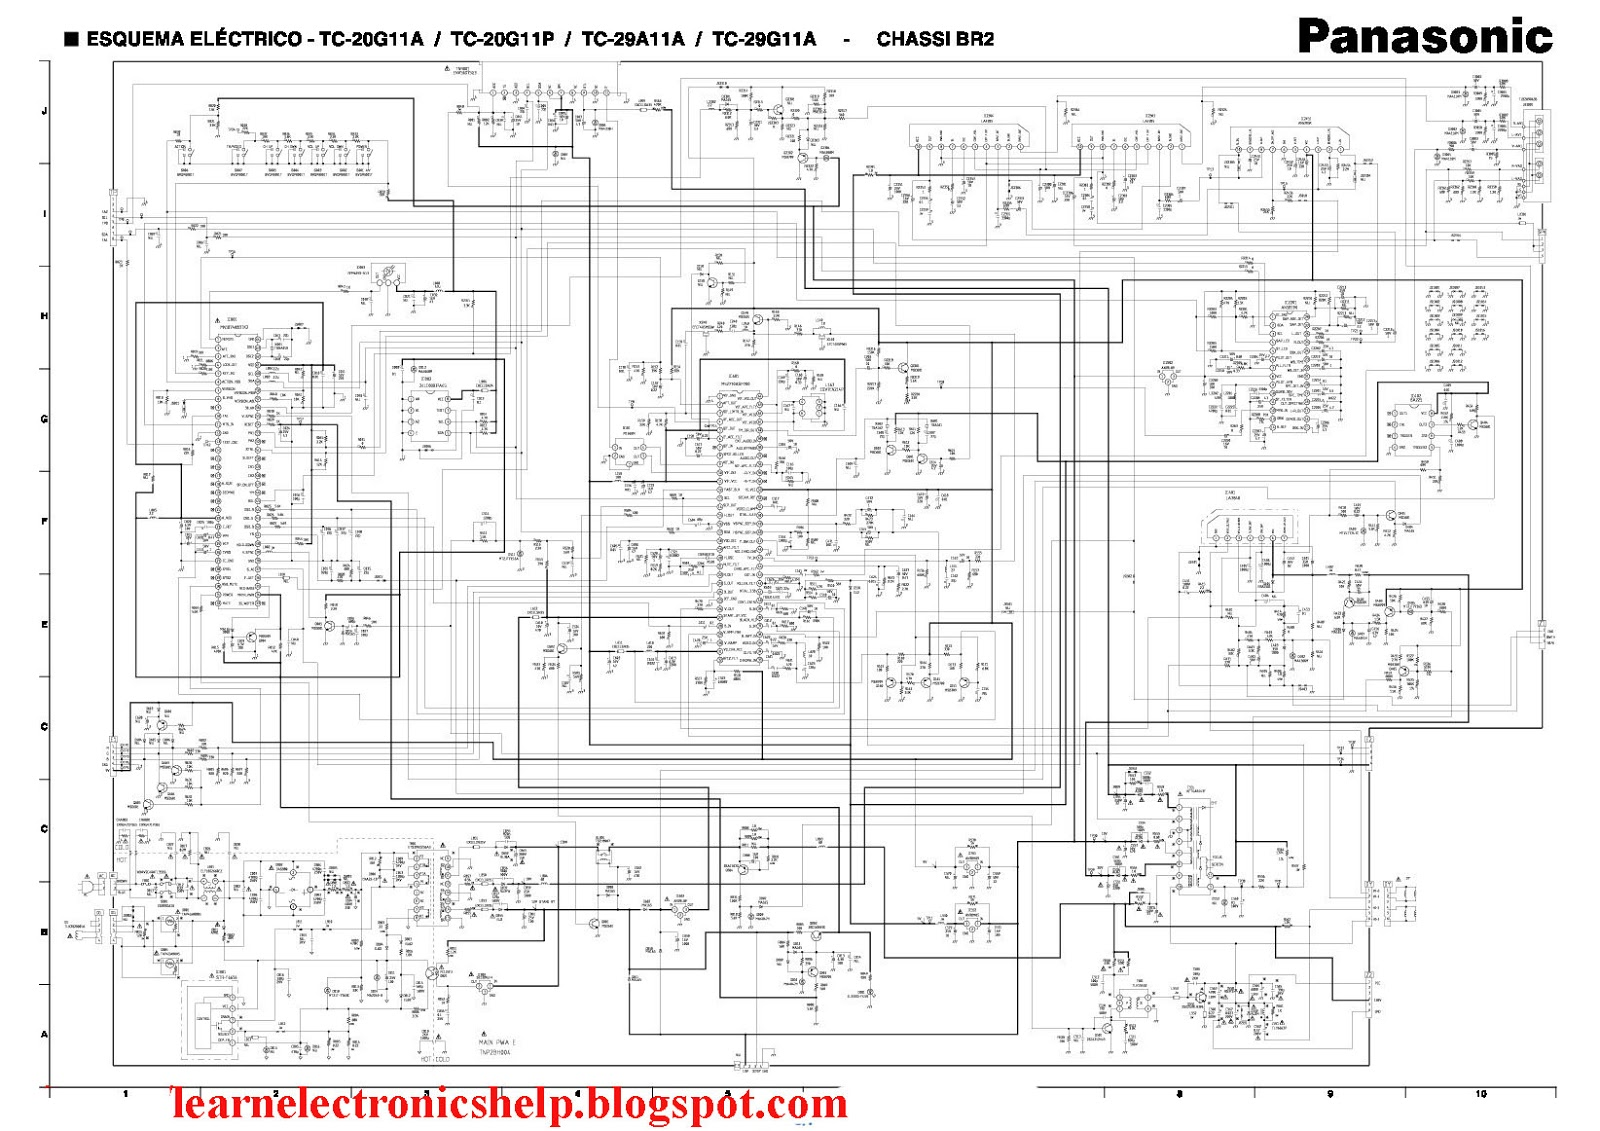 panasonic schematic diagram circuit simple wiring diagram schema panasonic microwave oven parts list panasonic schematic diagram [ 1600 x 1131 Pixel ]